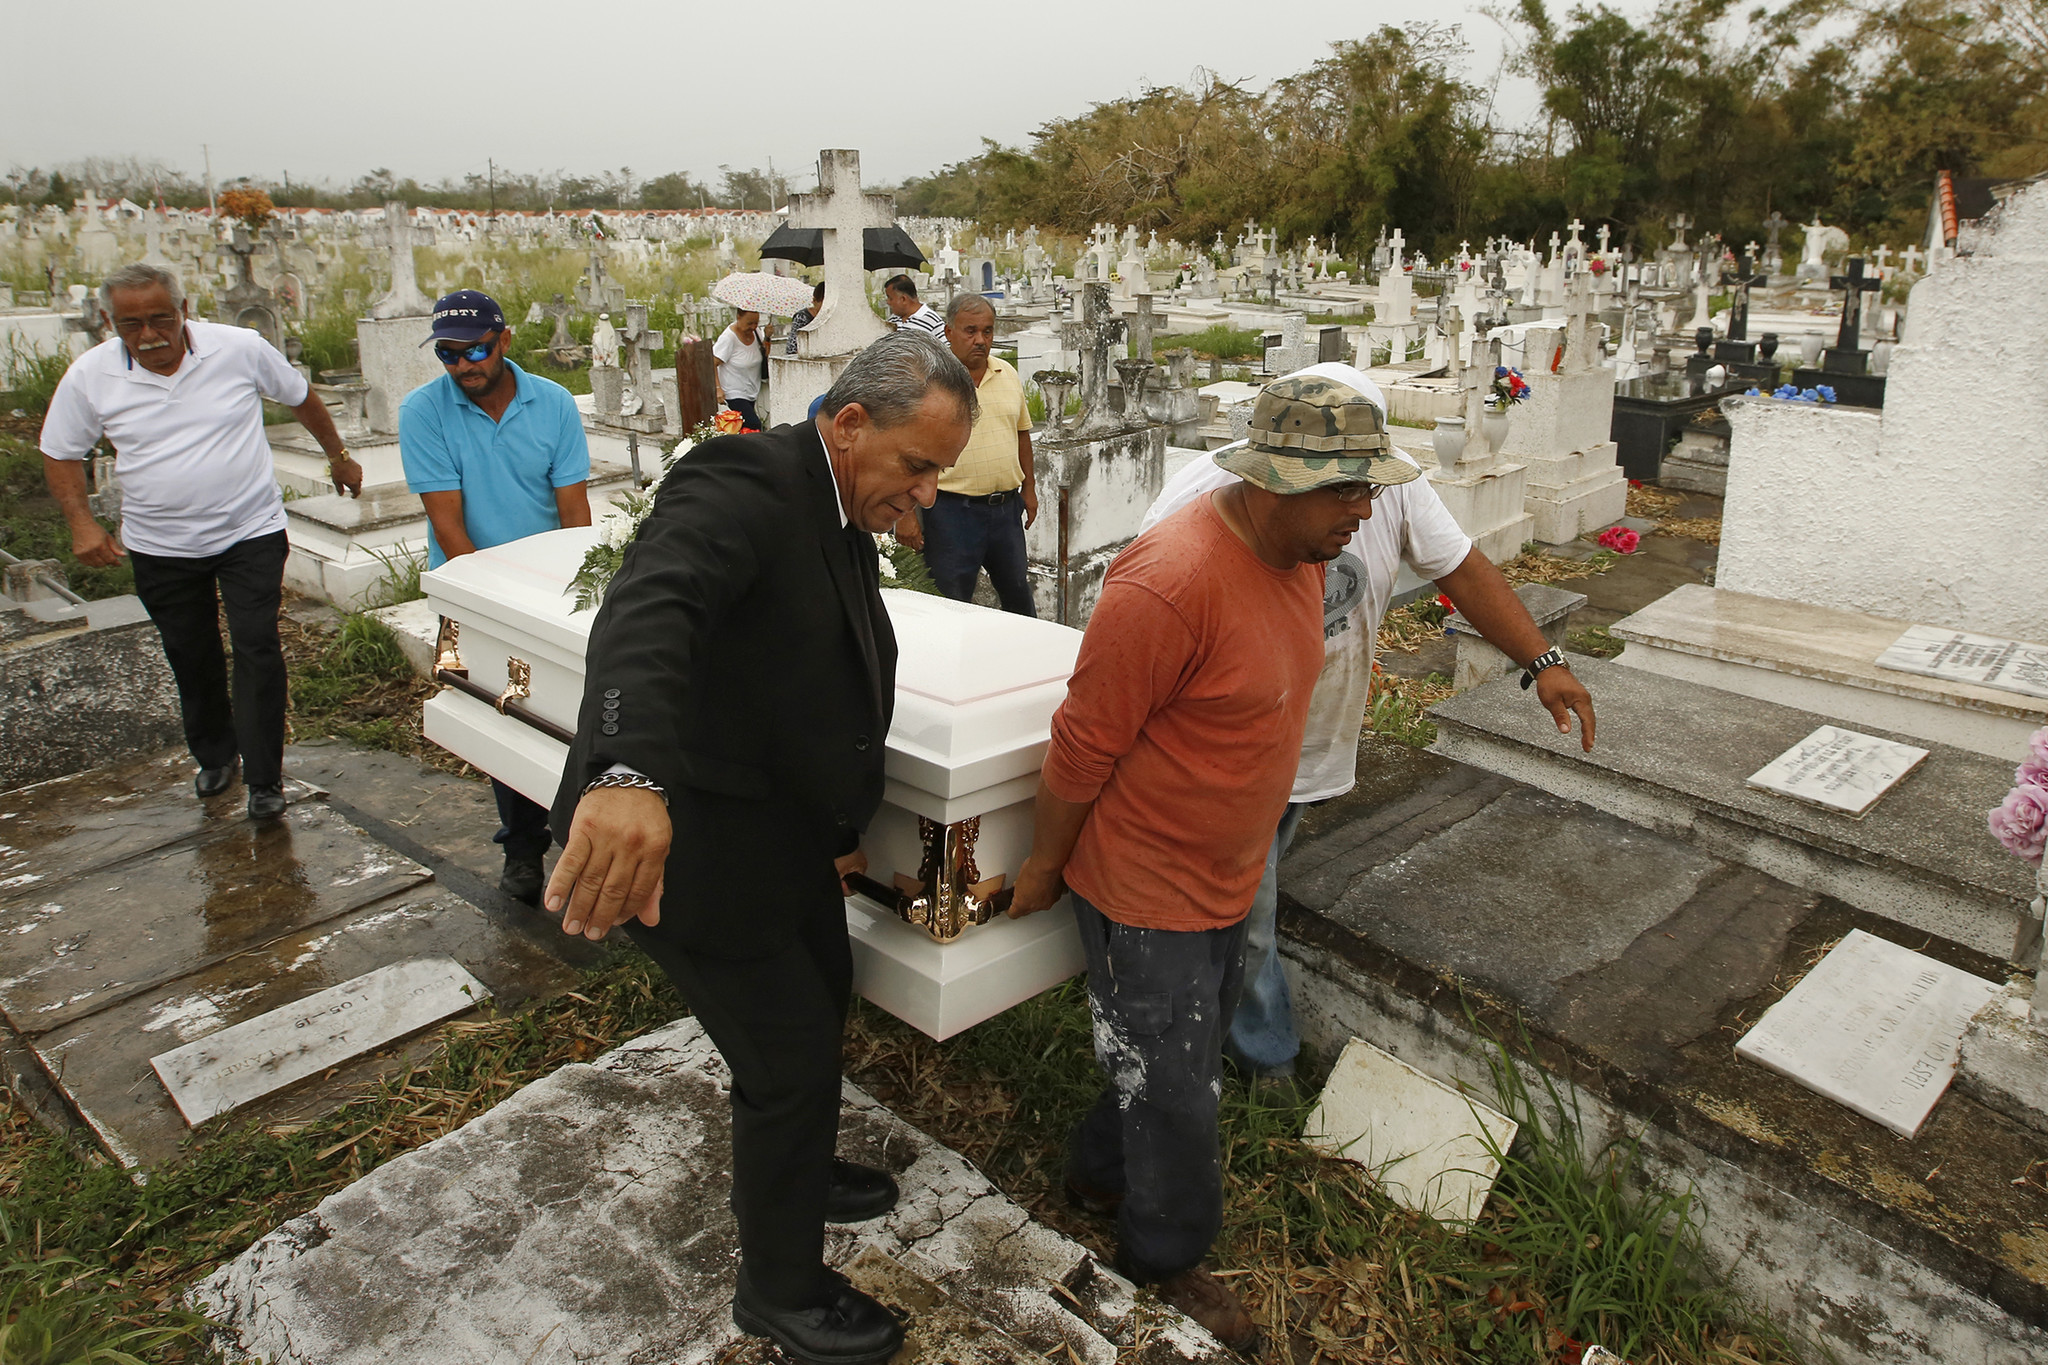 LAJAS, PUERTO RICO-The casket of Norma Casiano Rivera is carried to the gravesite at the Lajas munic